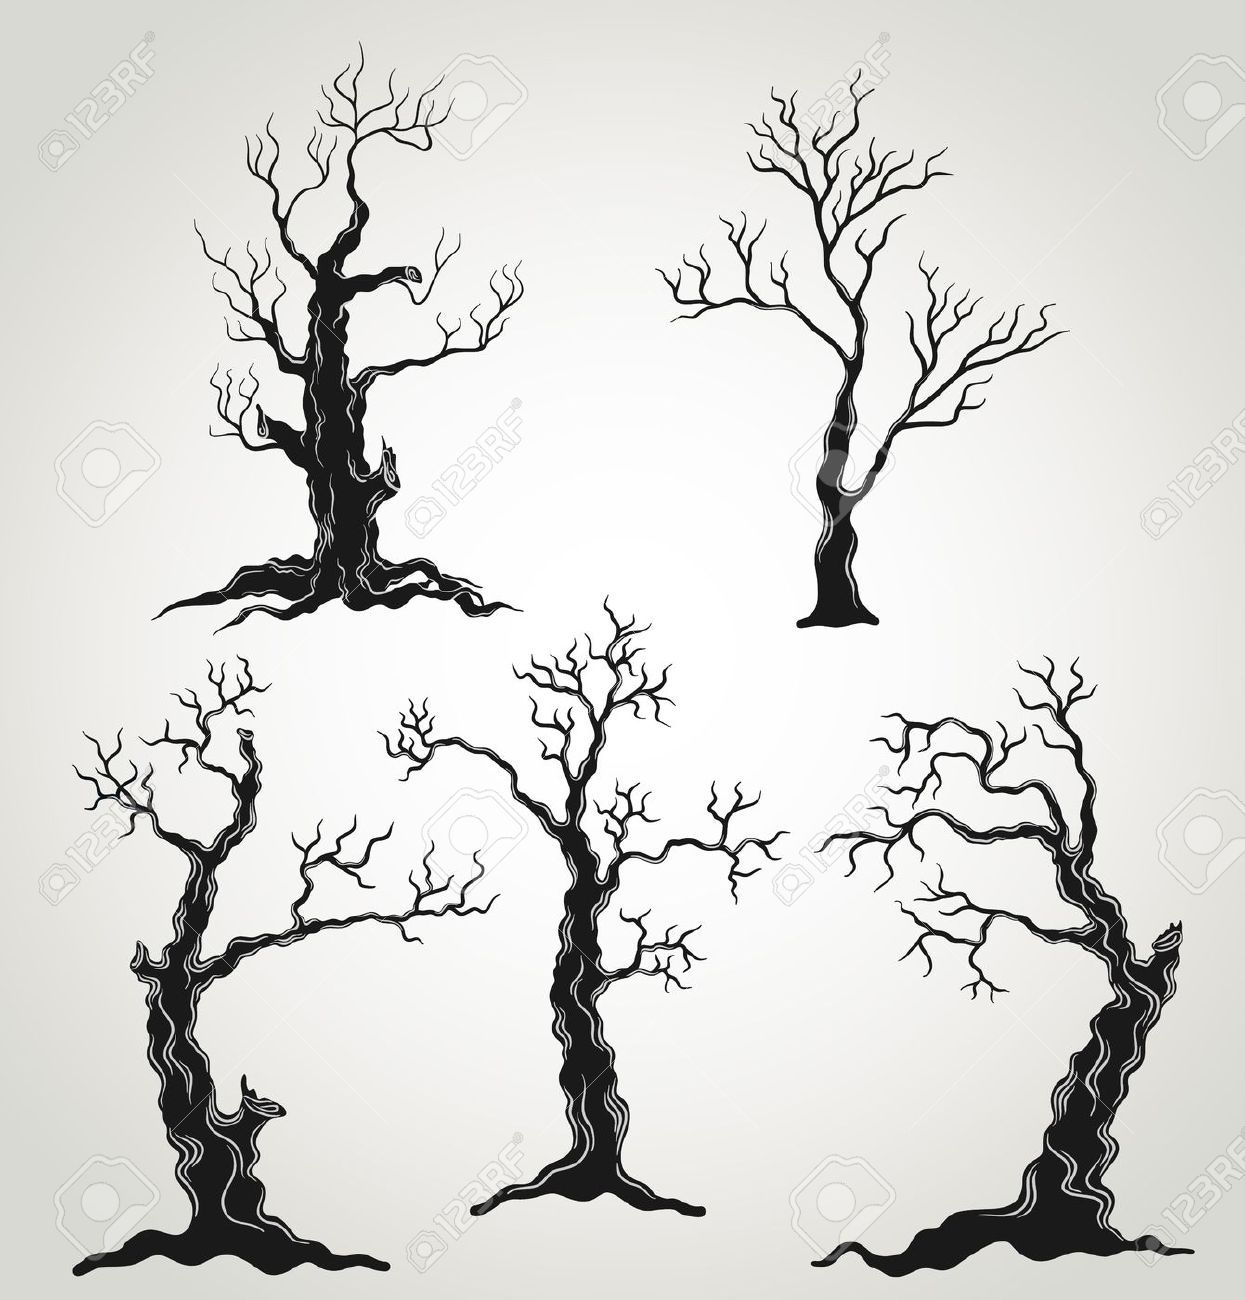 Spooky Tree Stock Vector Illustration And Royalty Free